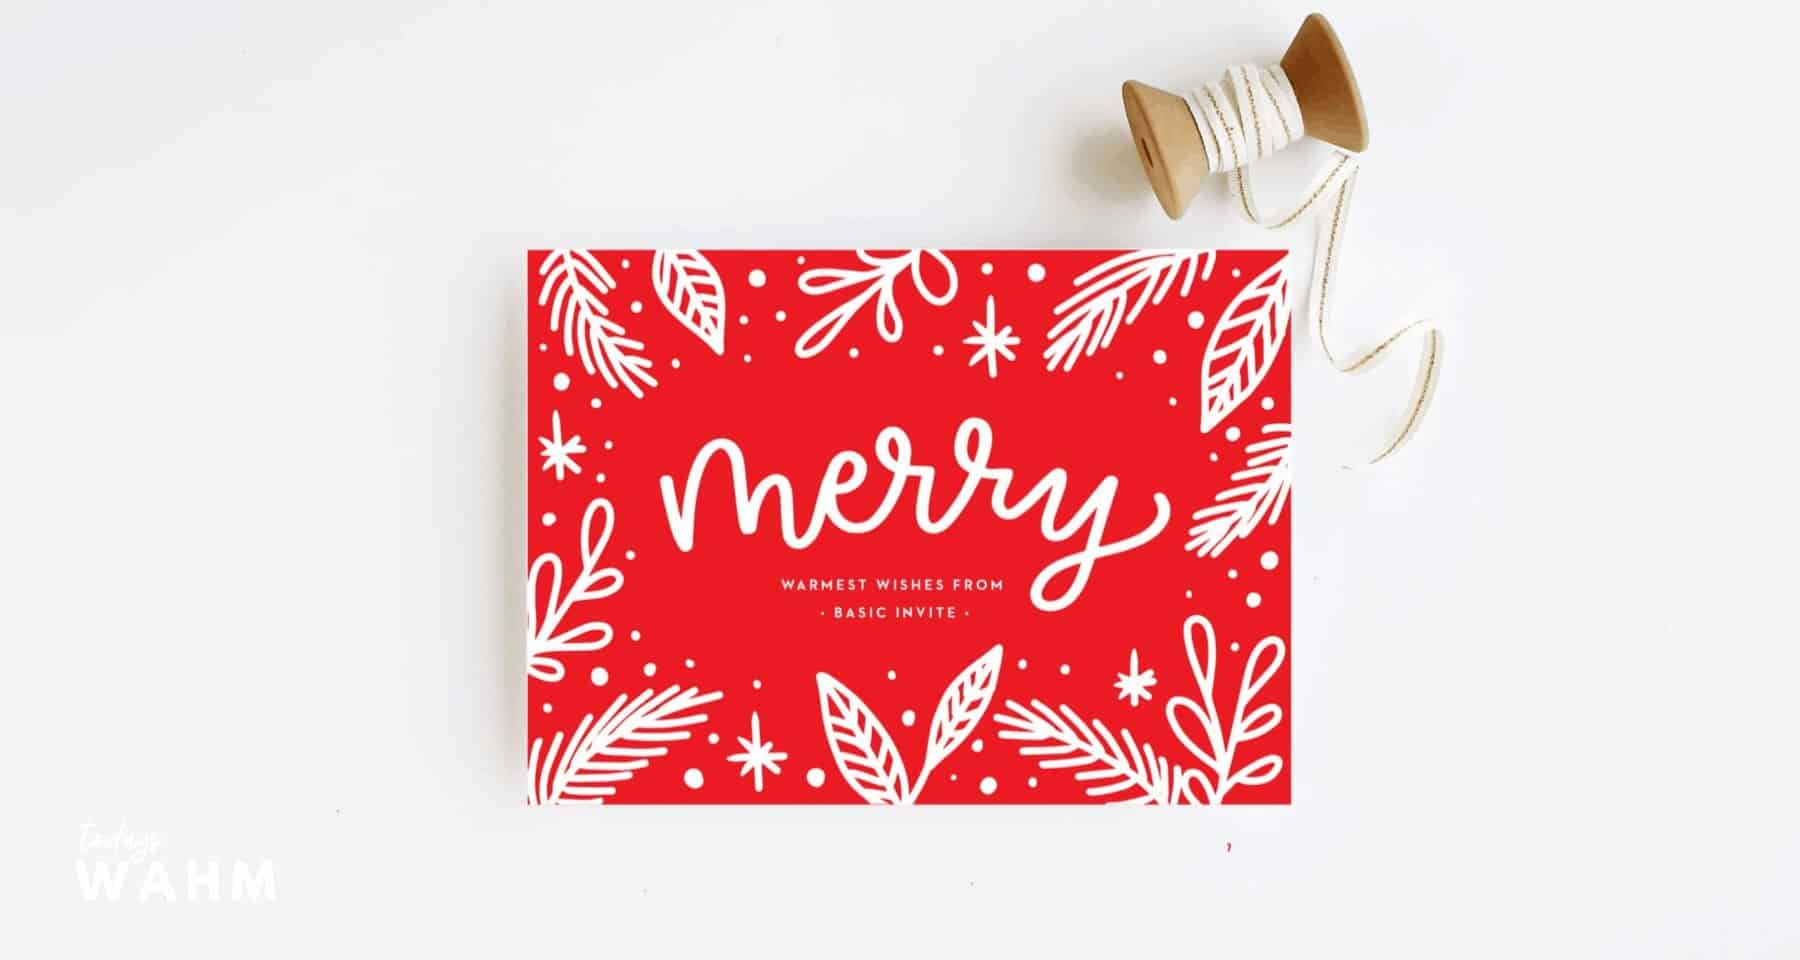 Basic Invite Is Where To Get Custom Holiday Cards